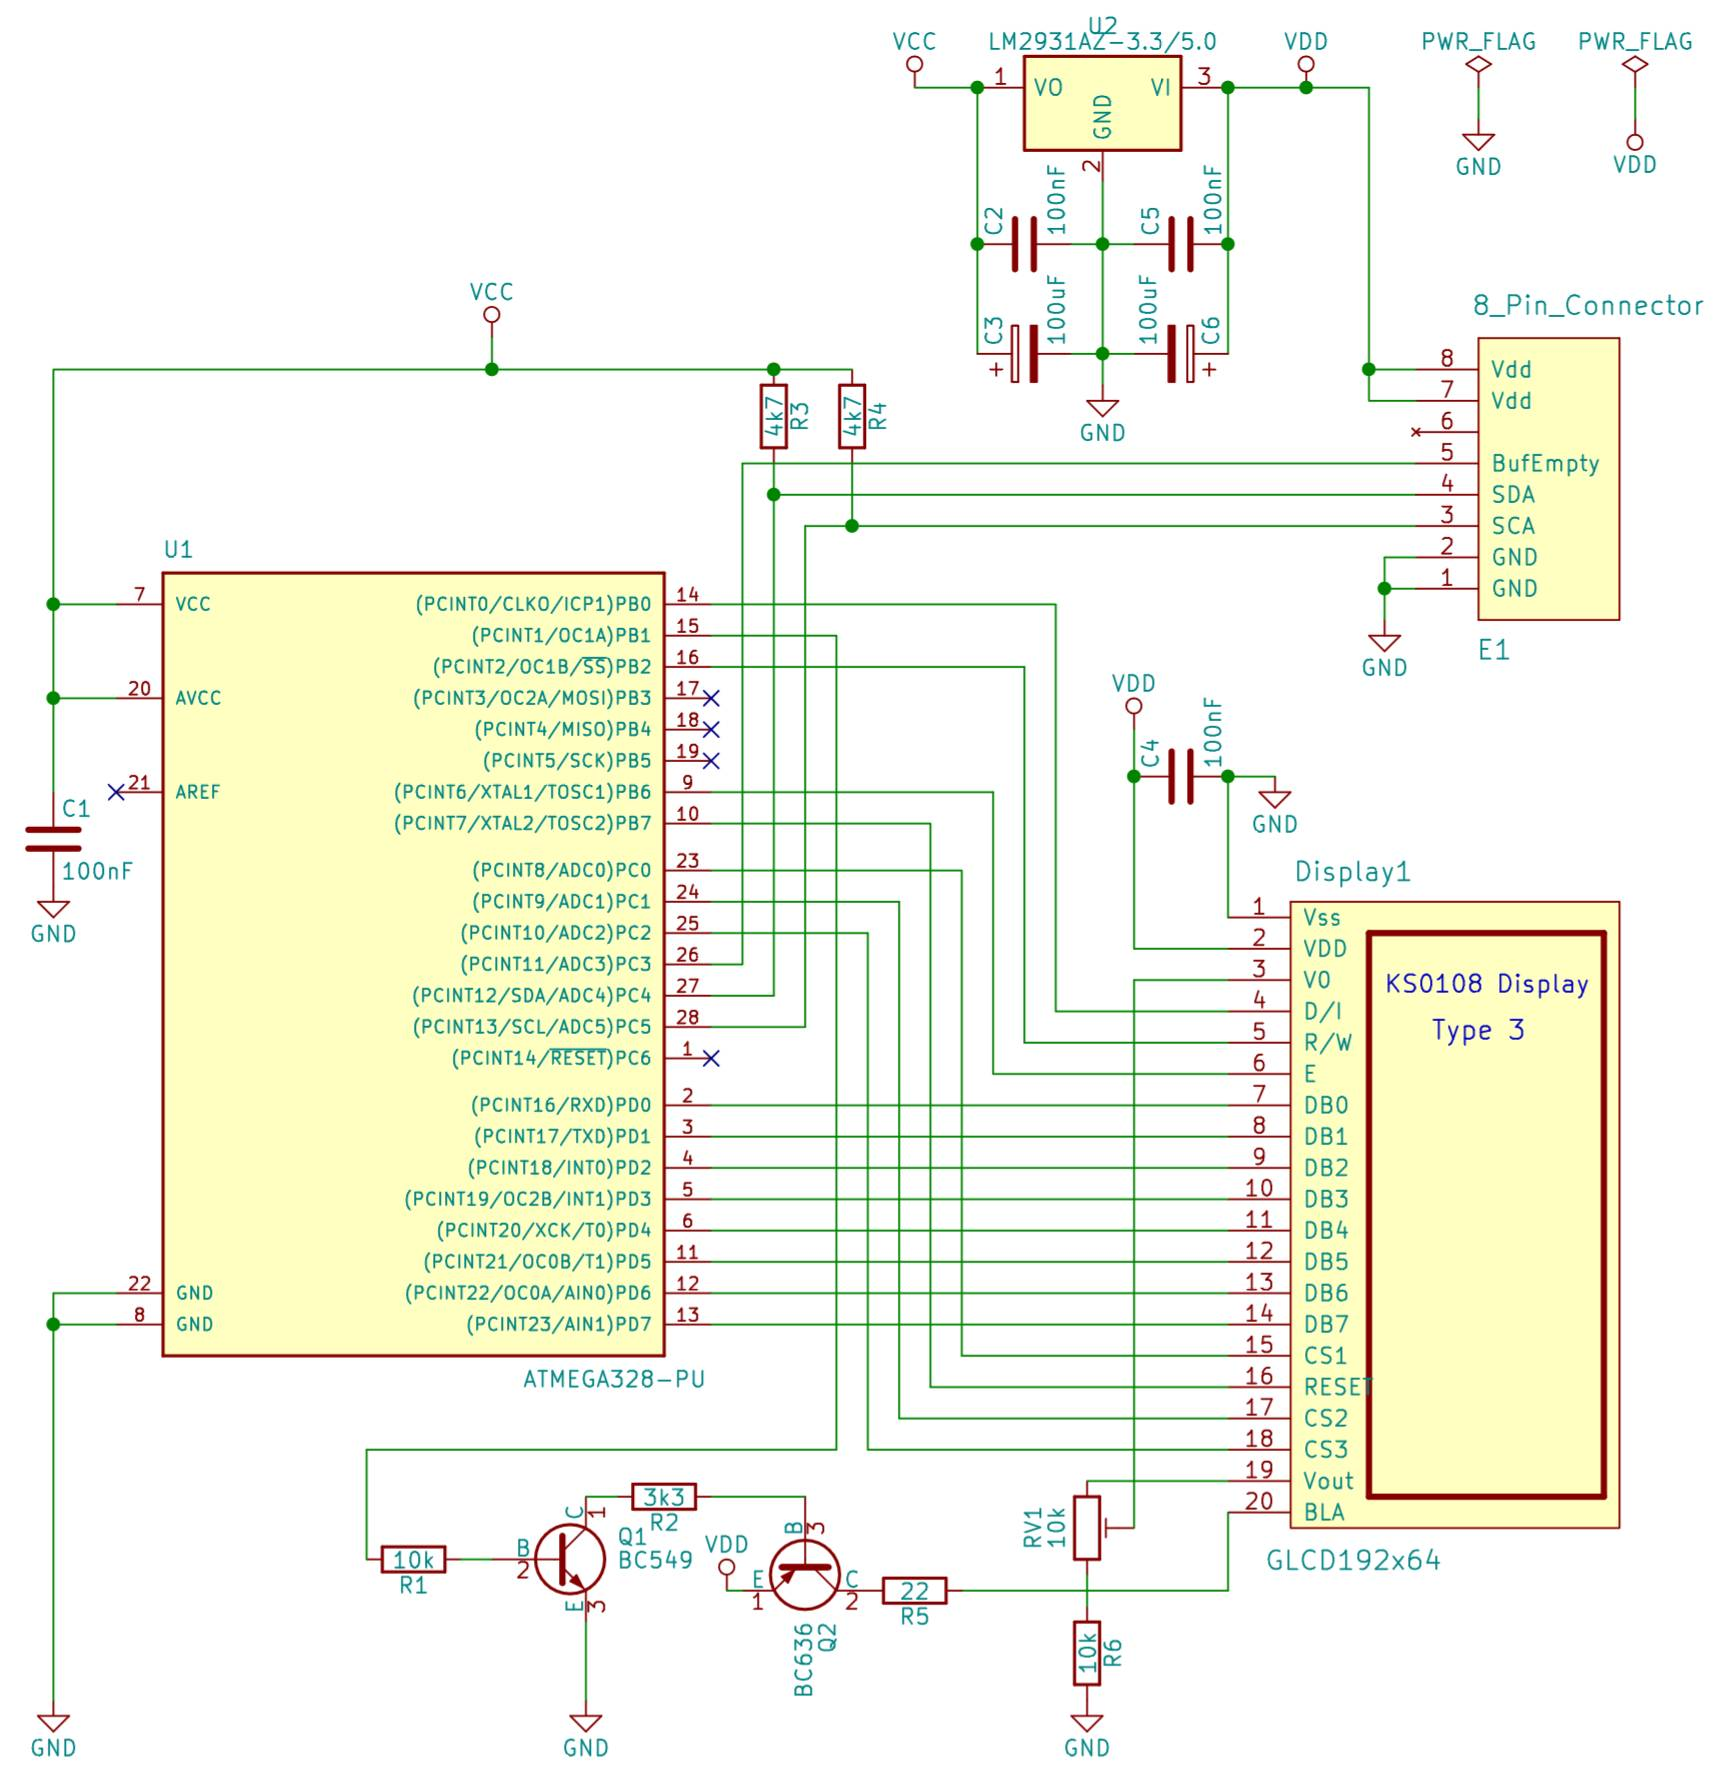 Schaltplan des I2C GLCD Interfaces